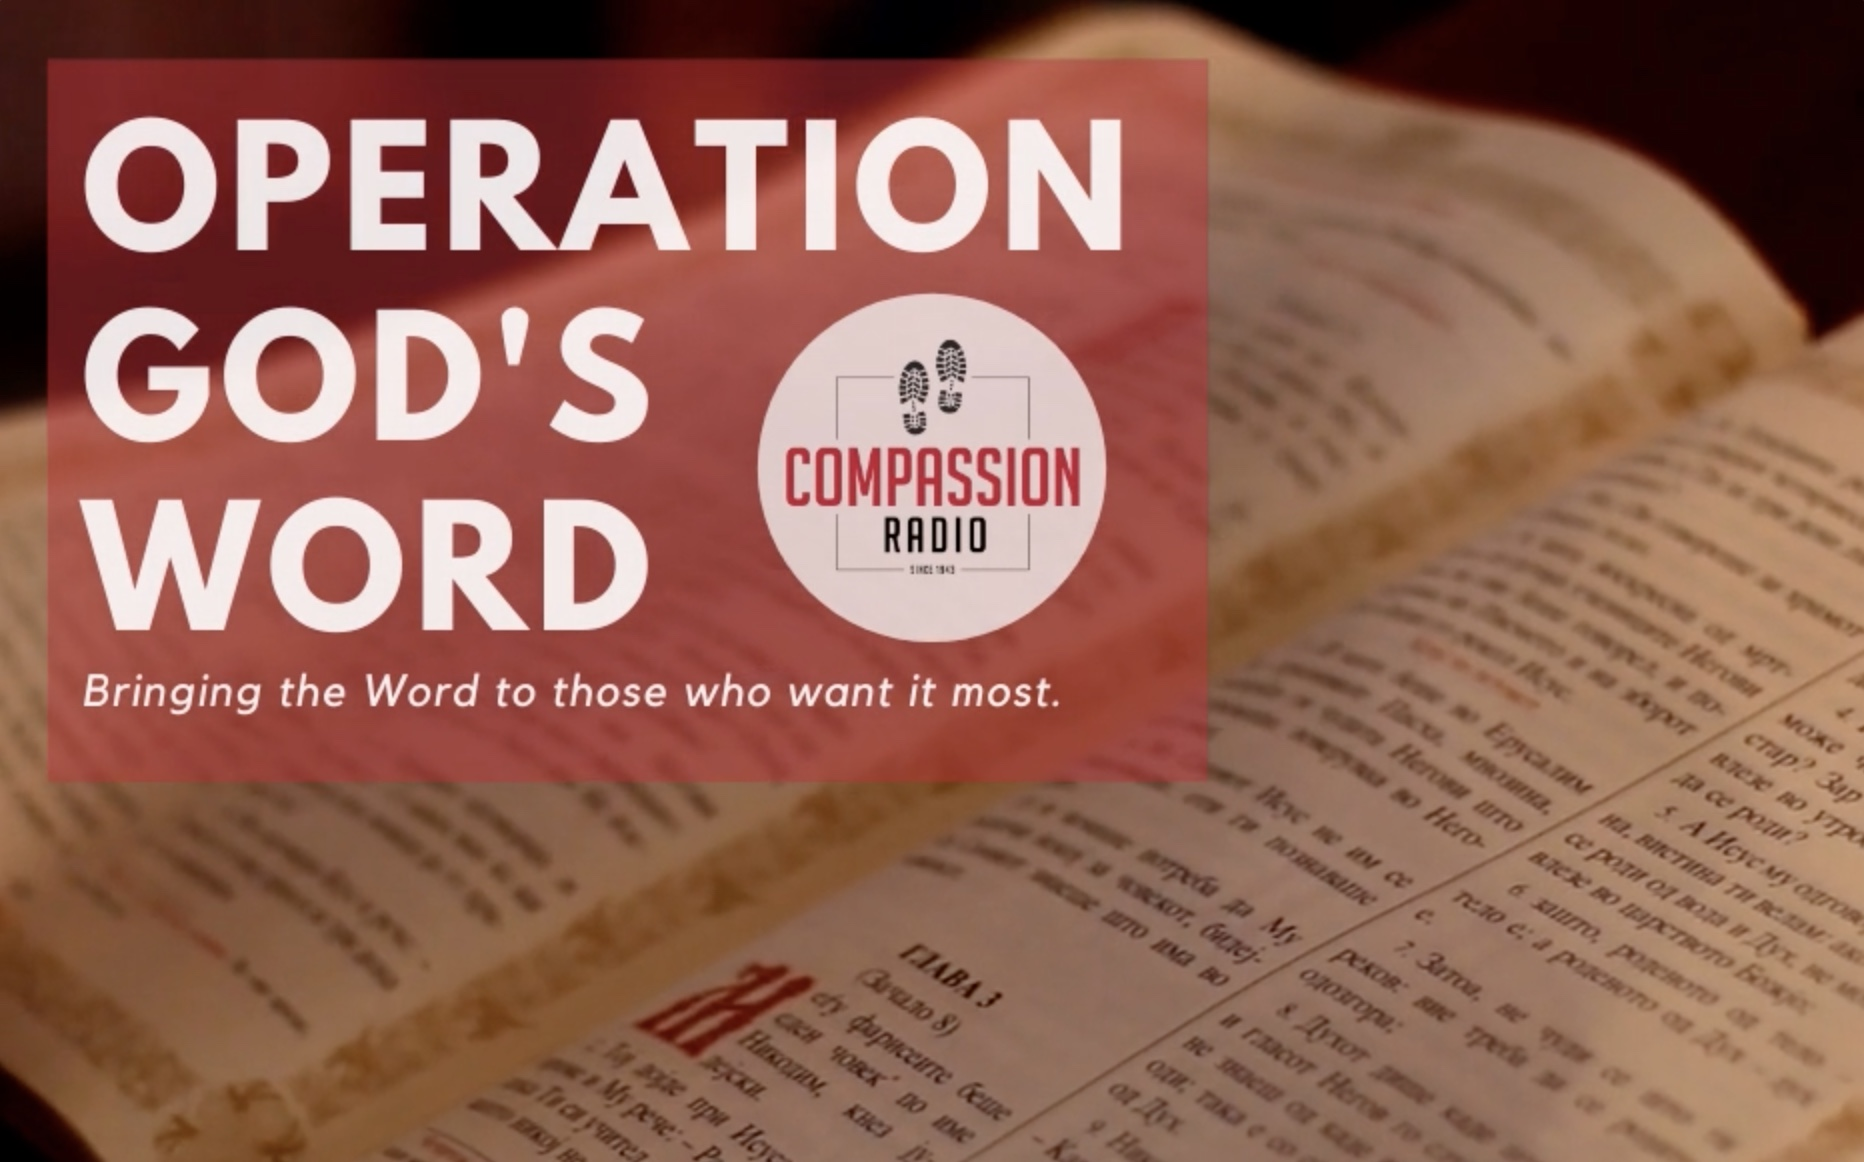 Details about Compassion Radio's Compassion Project, Operation God's Word